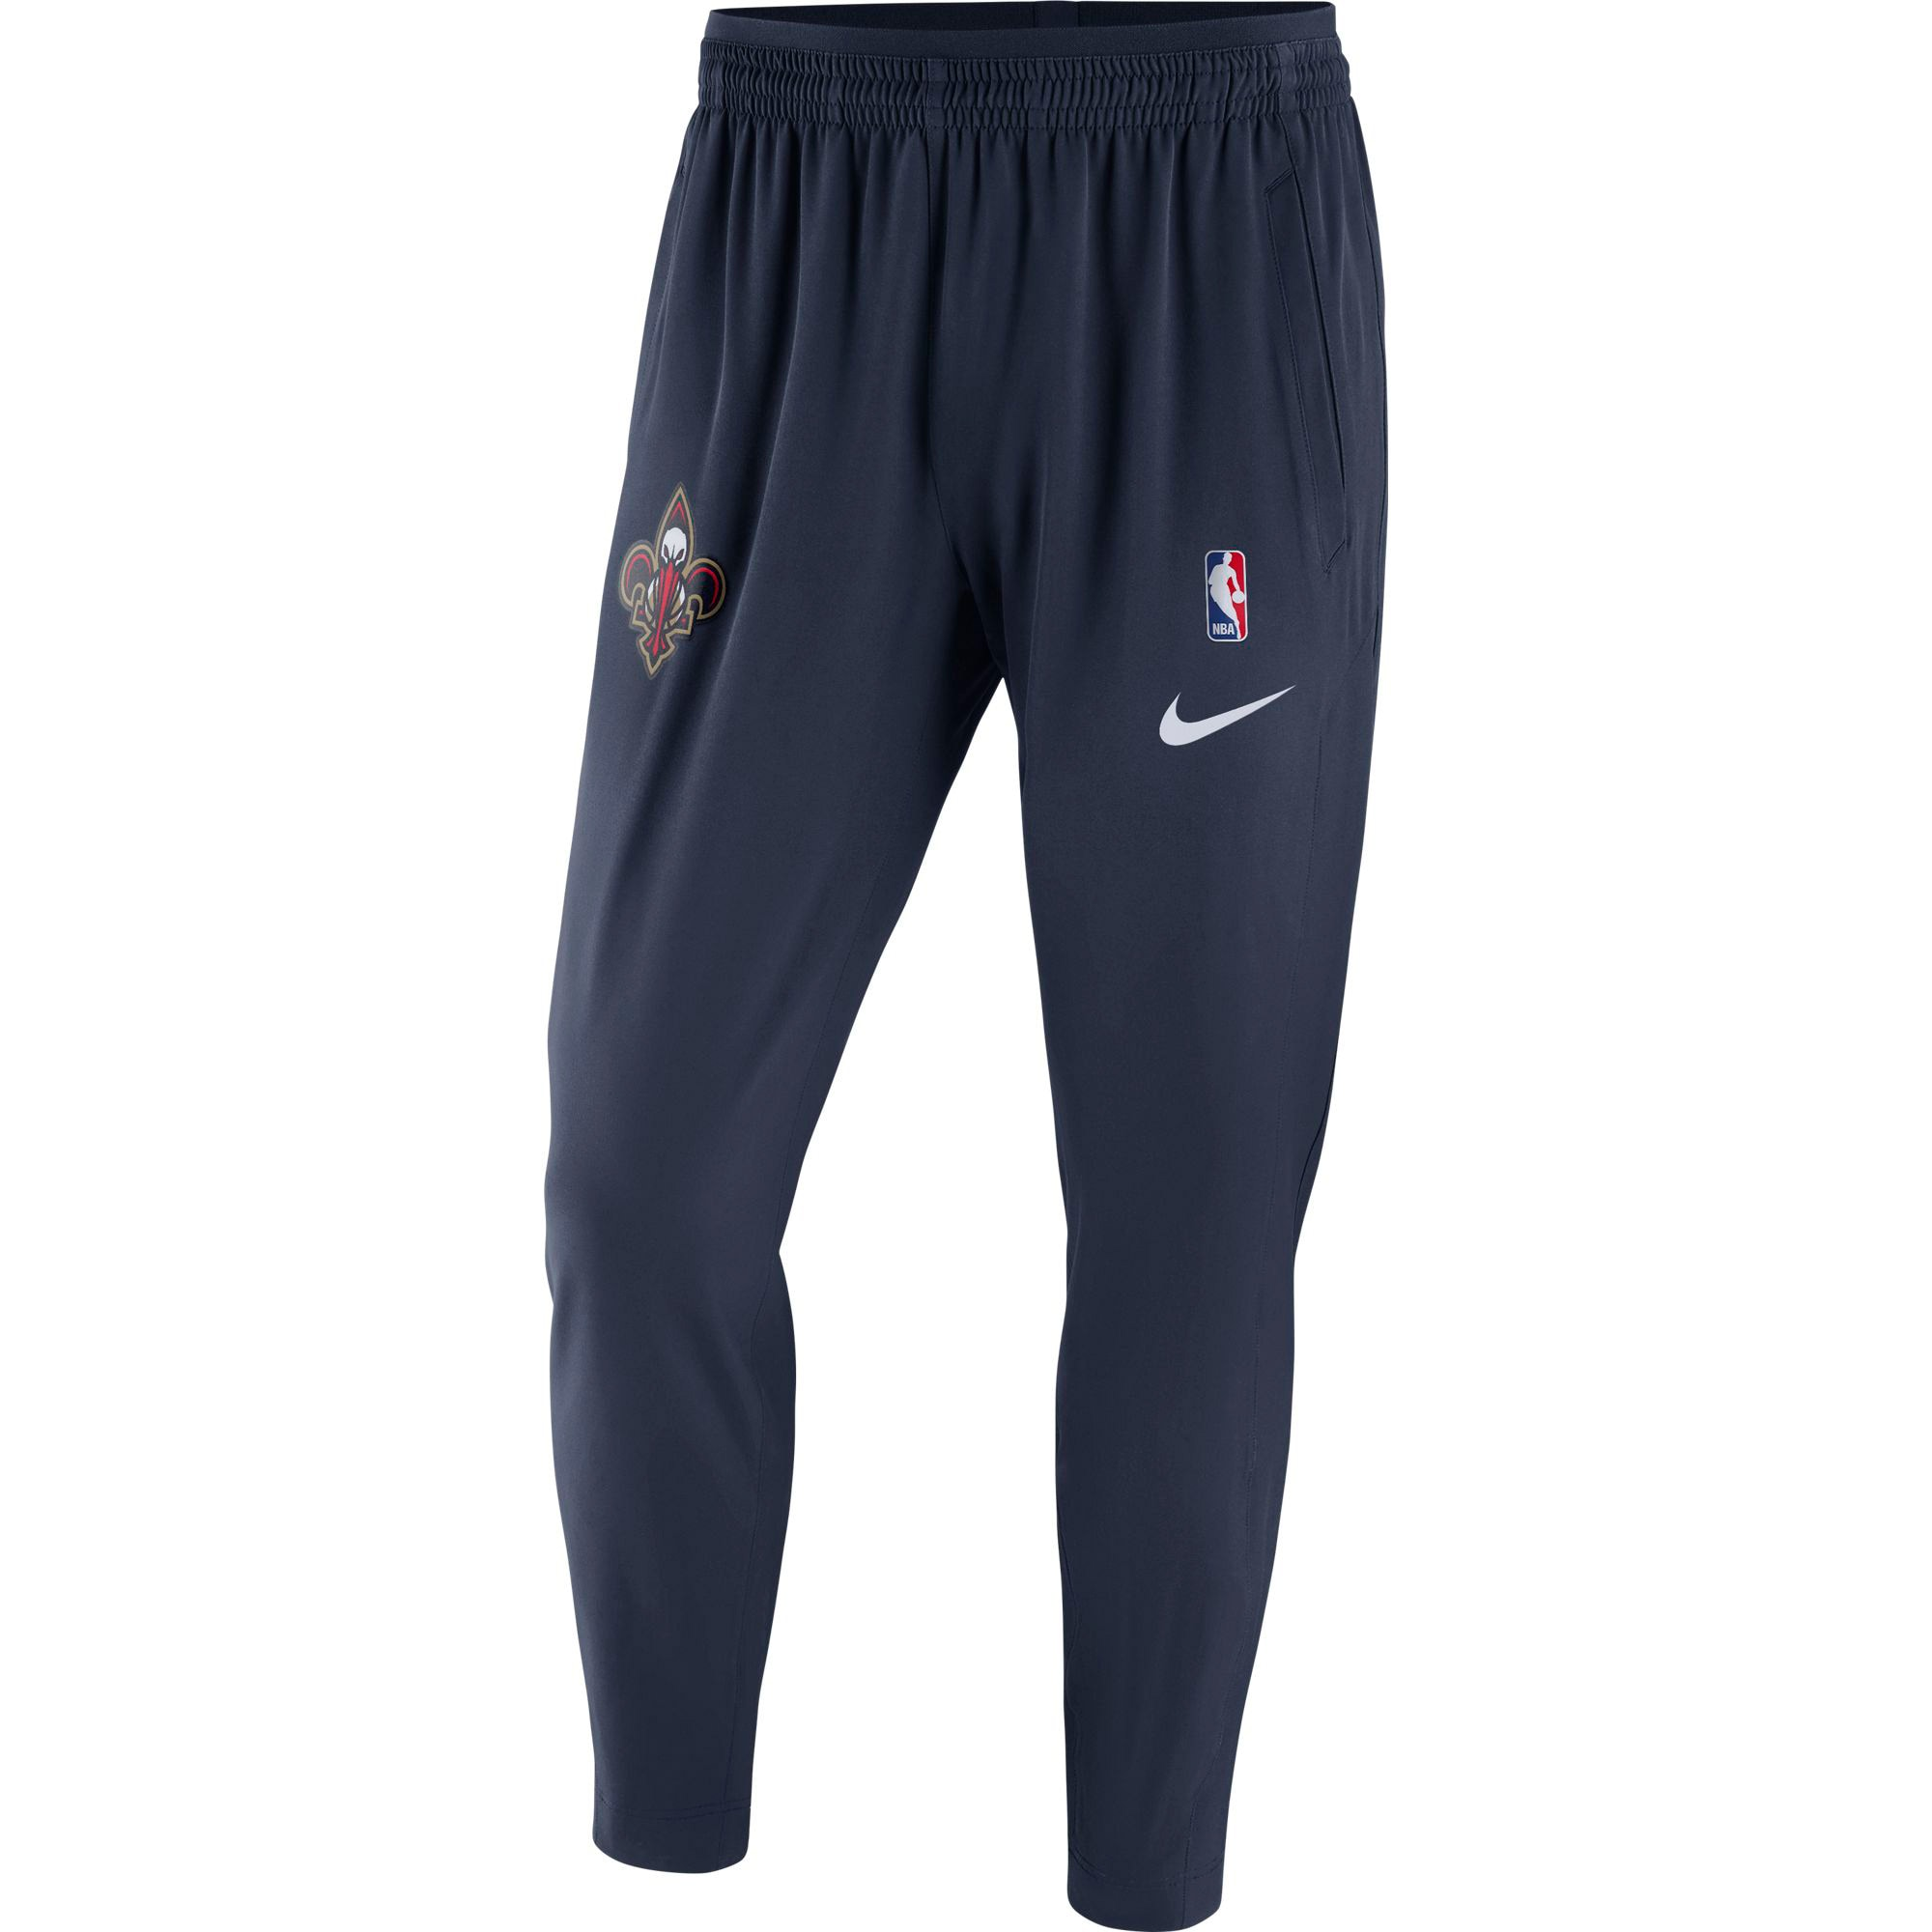 New Orleans Pelicans Nike Showtime Performance Pants - Navy